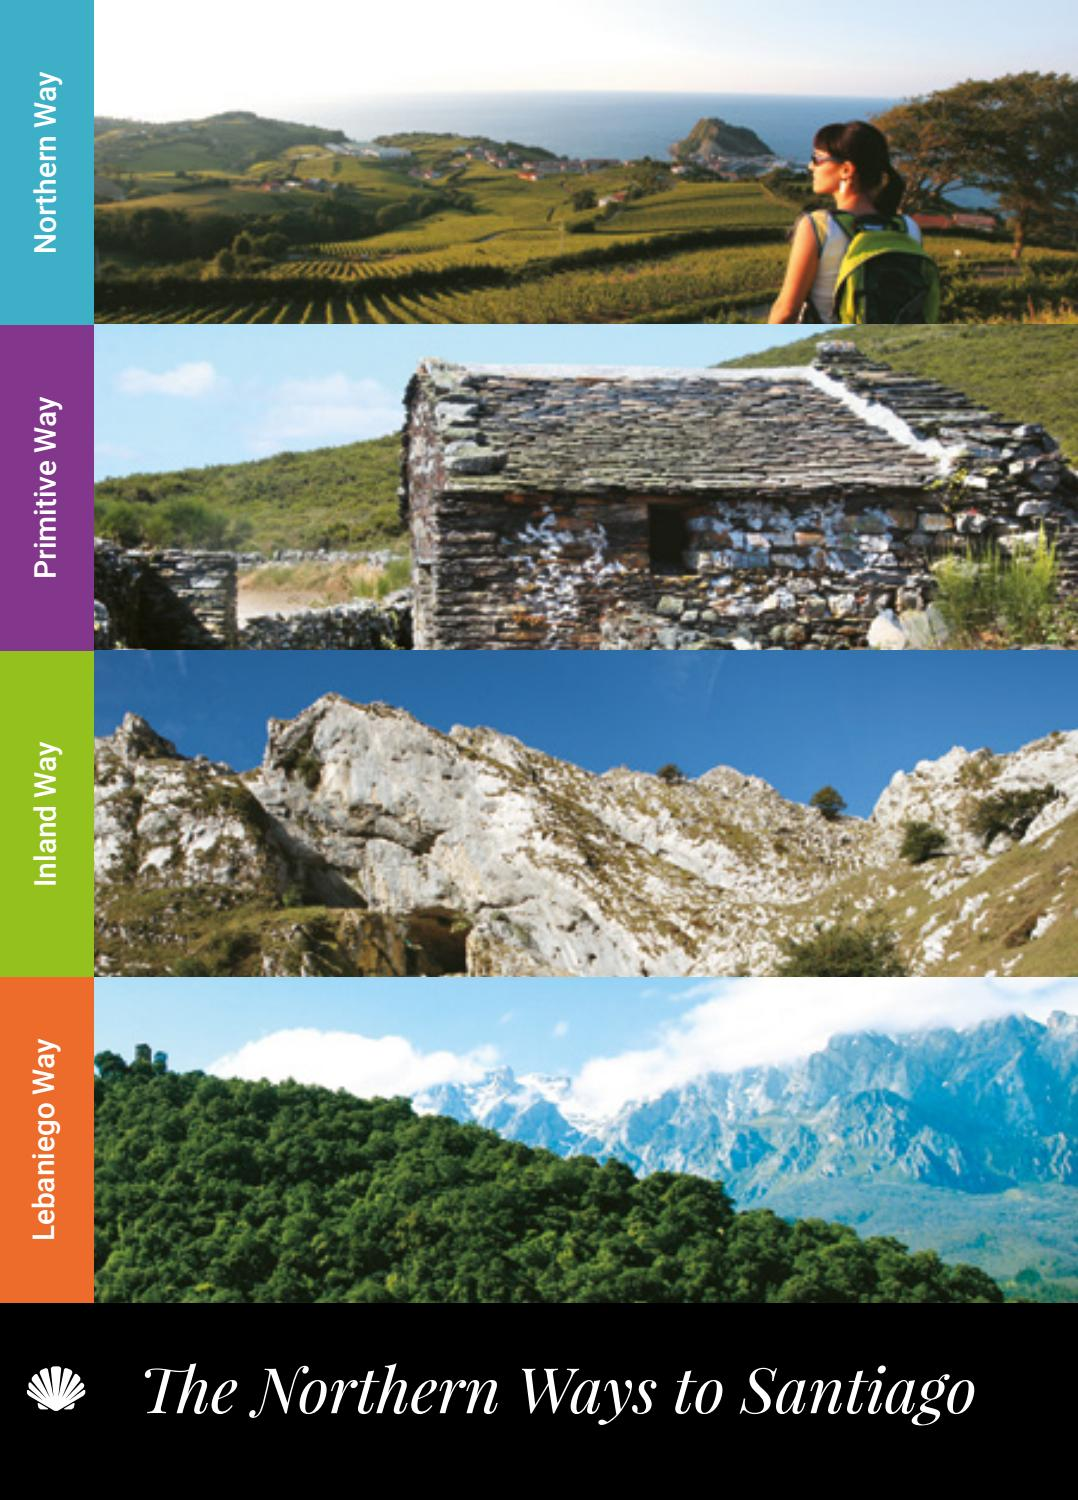 Camino Santiago Zona Norte Guide To The Northern Ways Of St James By Dirección De Turismo